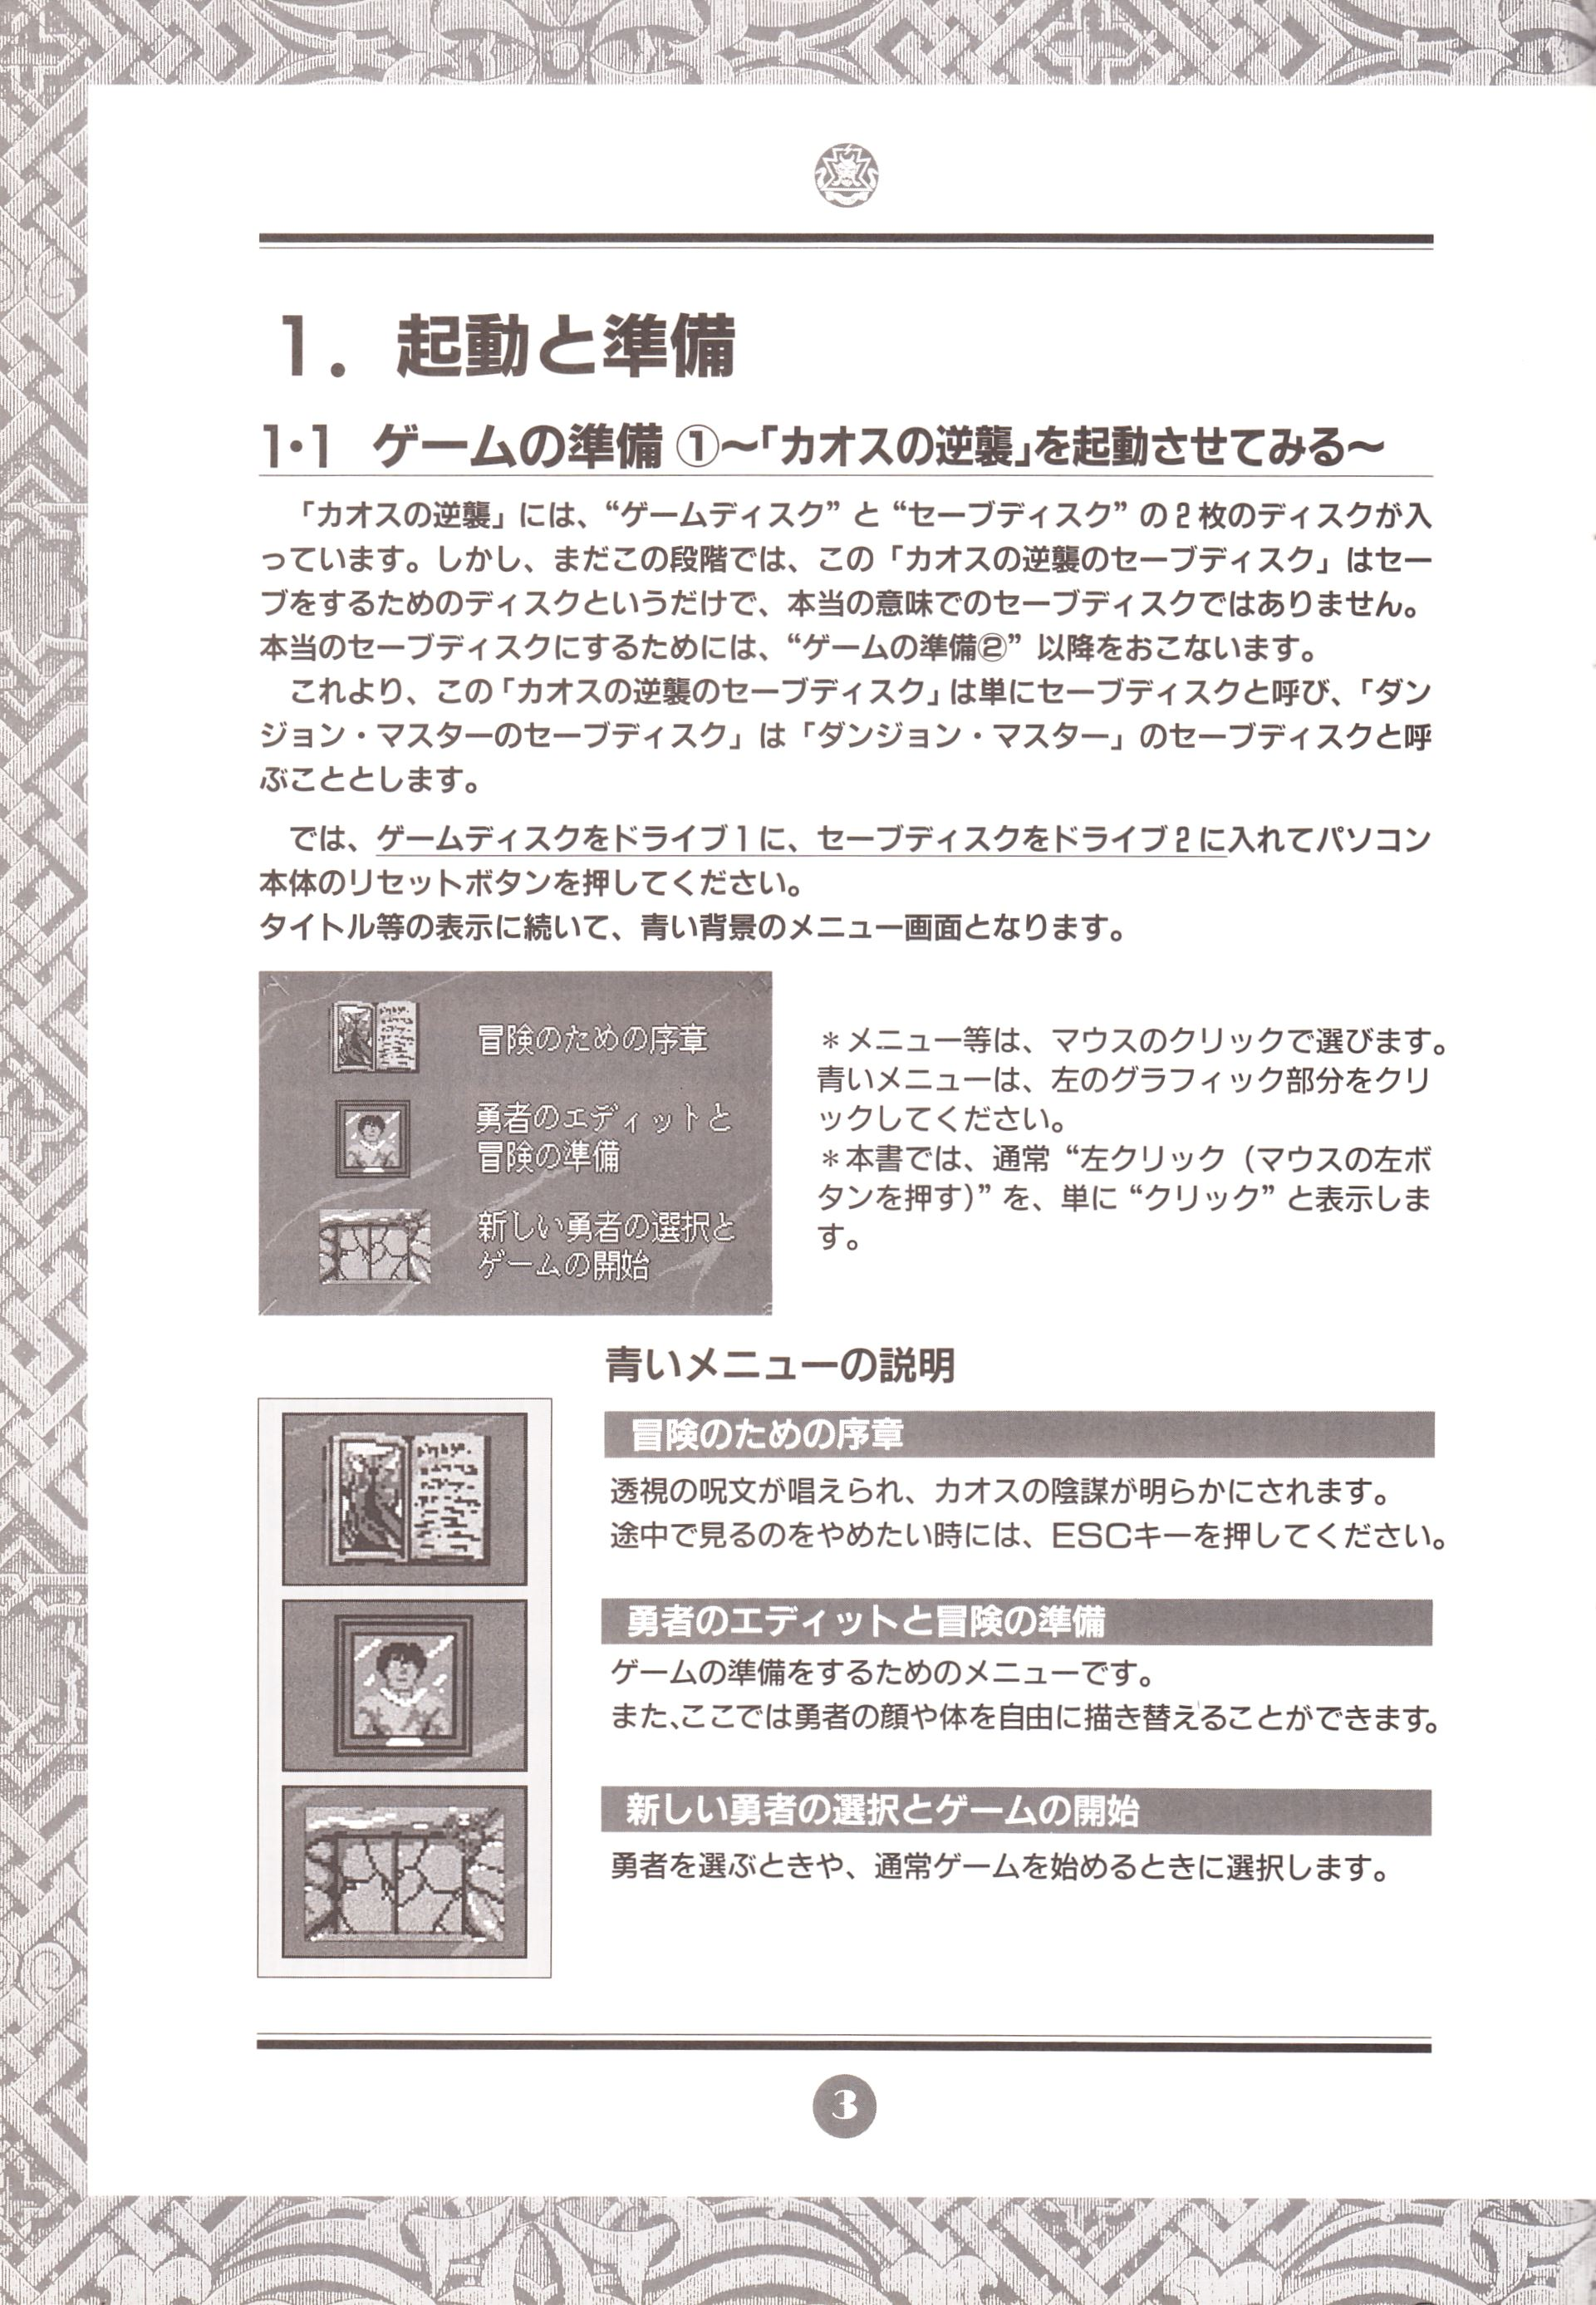 Game - Chaos Strikes Back - JP - PC-9801 - 3-5-inch - An Operation Manual - Page 006 - Scan